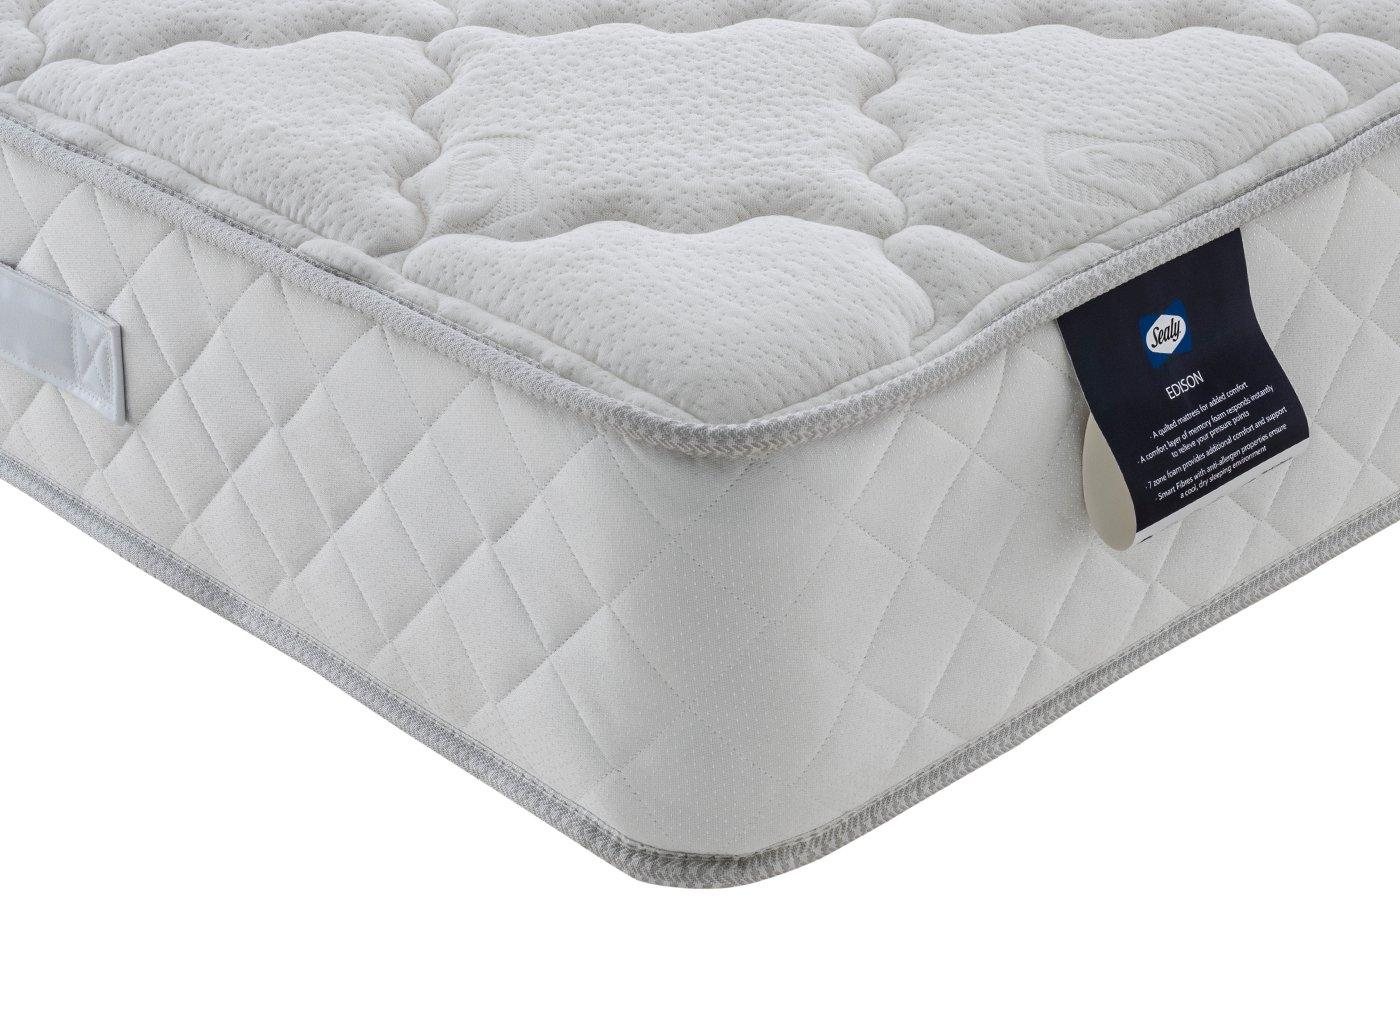 Sealy Edison Traditional Spring Mattress (£399)